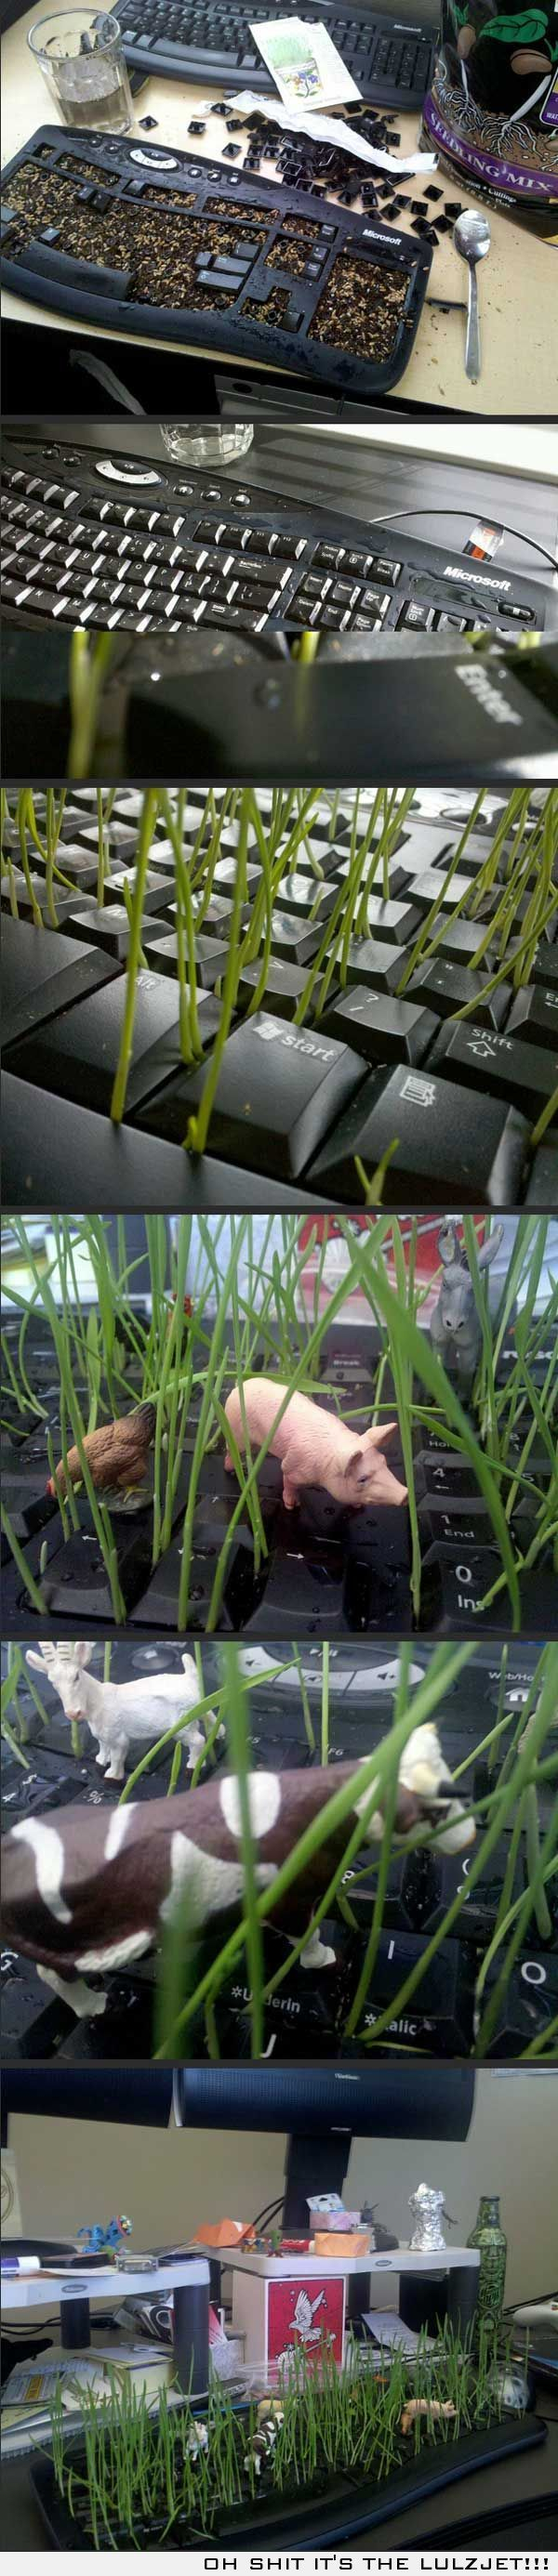 Planting a garden in a keyboard. WHO THINKS OF THESE THINGS DO YOU PEOPLE NOT HAVE LIVES